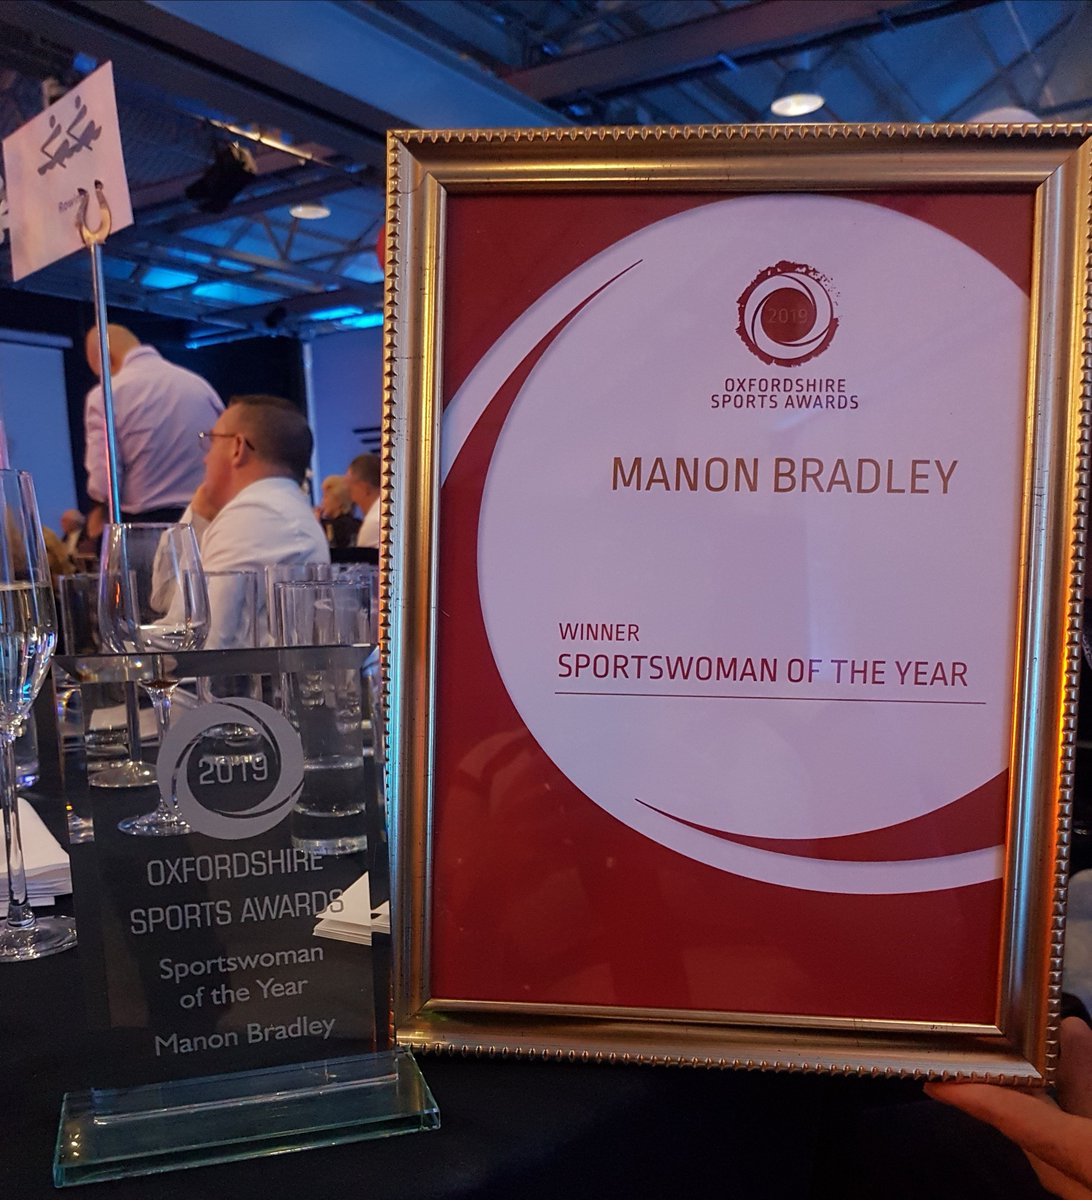 RT @ManonBradley: Delighted to been awarded Oxfordshire Sports woman of the year #oxonsportsawards thank you to whoever nominated me.